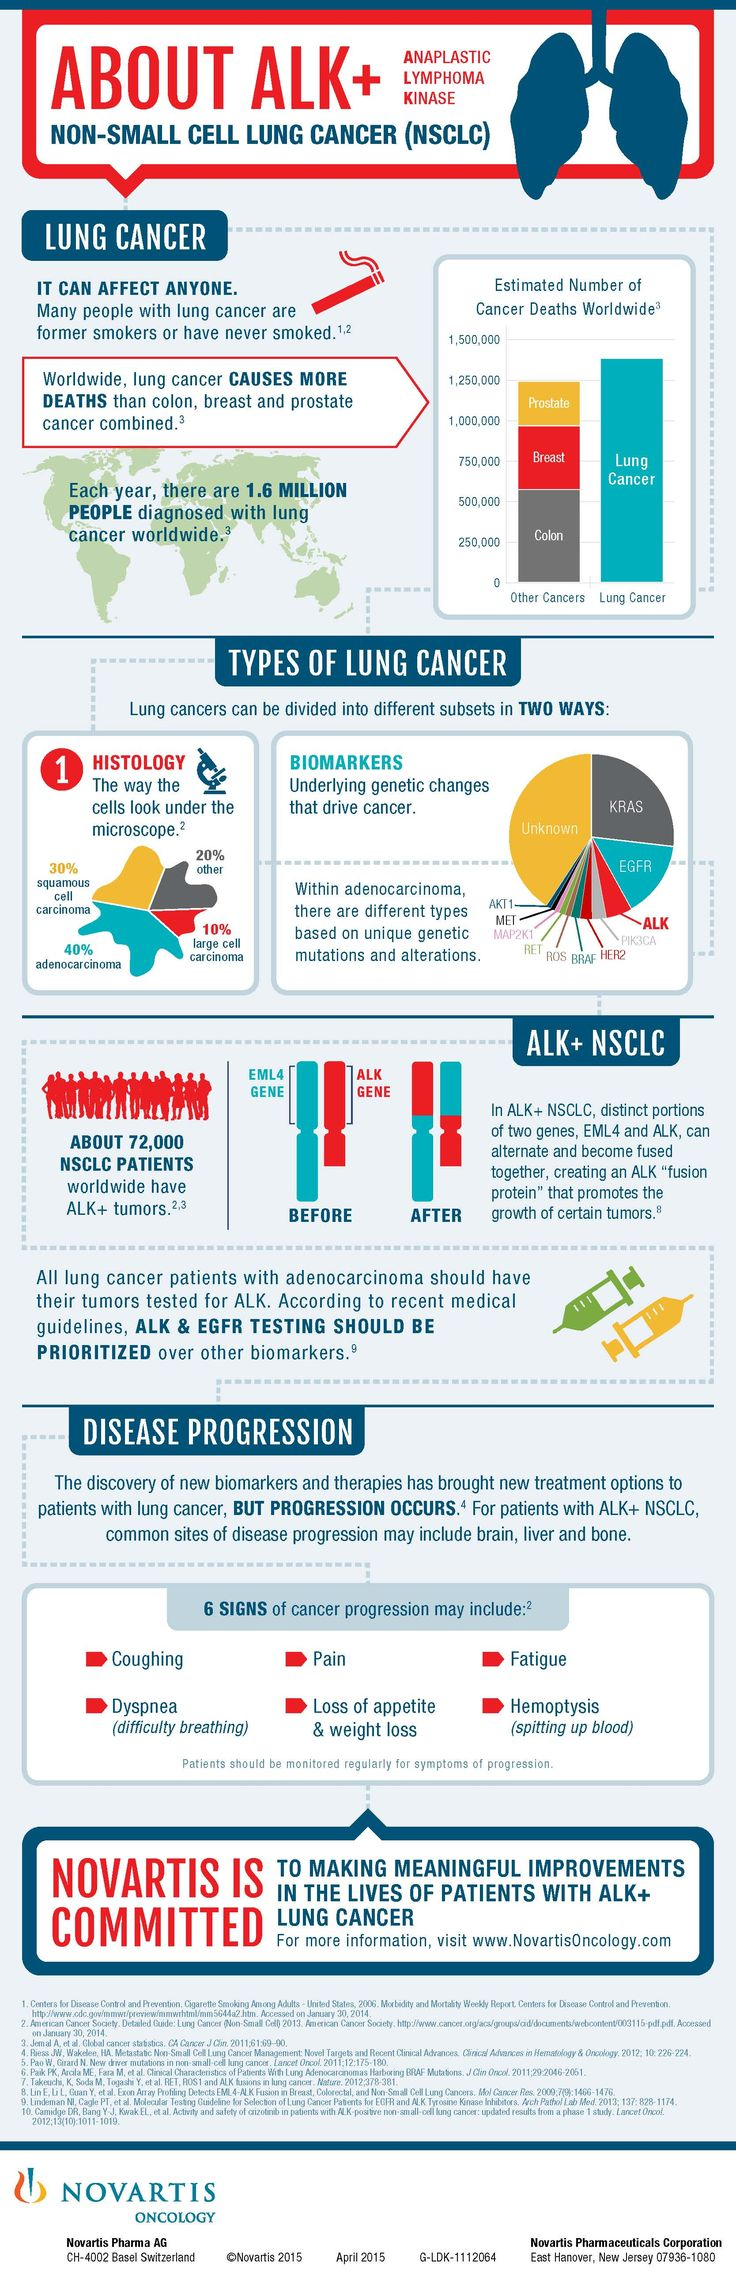 About ALK+ Non-Small Cell Lung Cancer